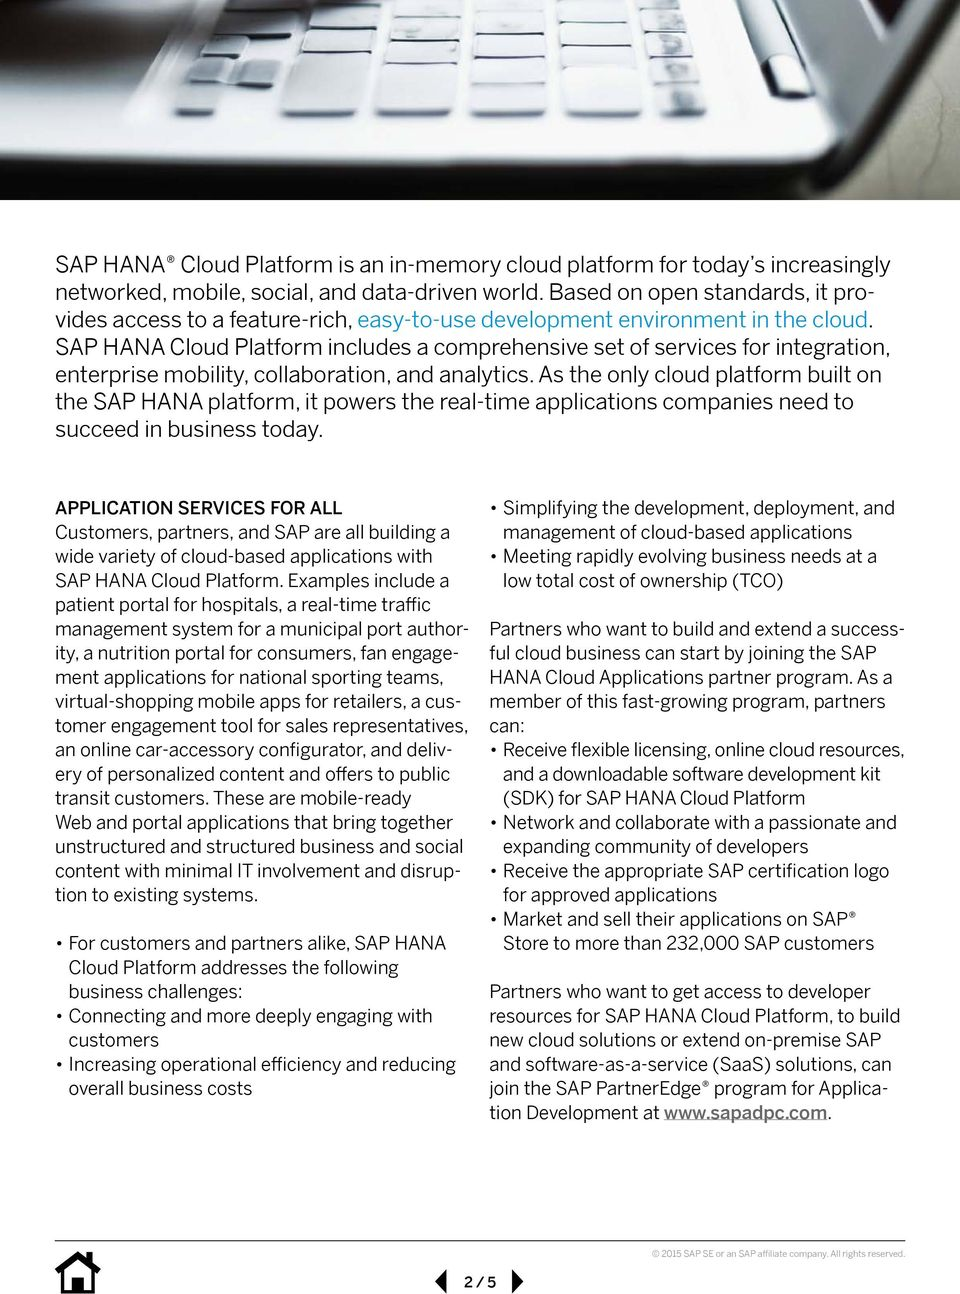 SAP HANA Cloud Platform includes a comprehensive set of services for integration, enterprise mobility, collaboration, and analytics.